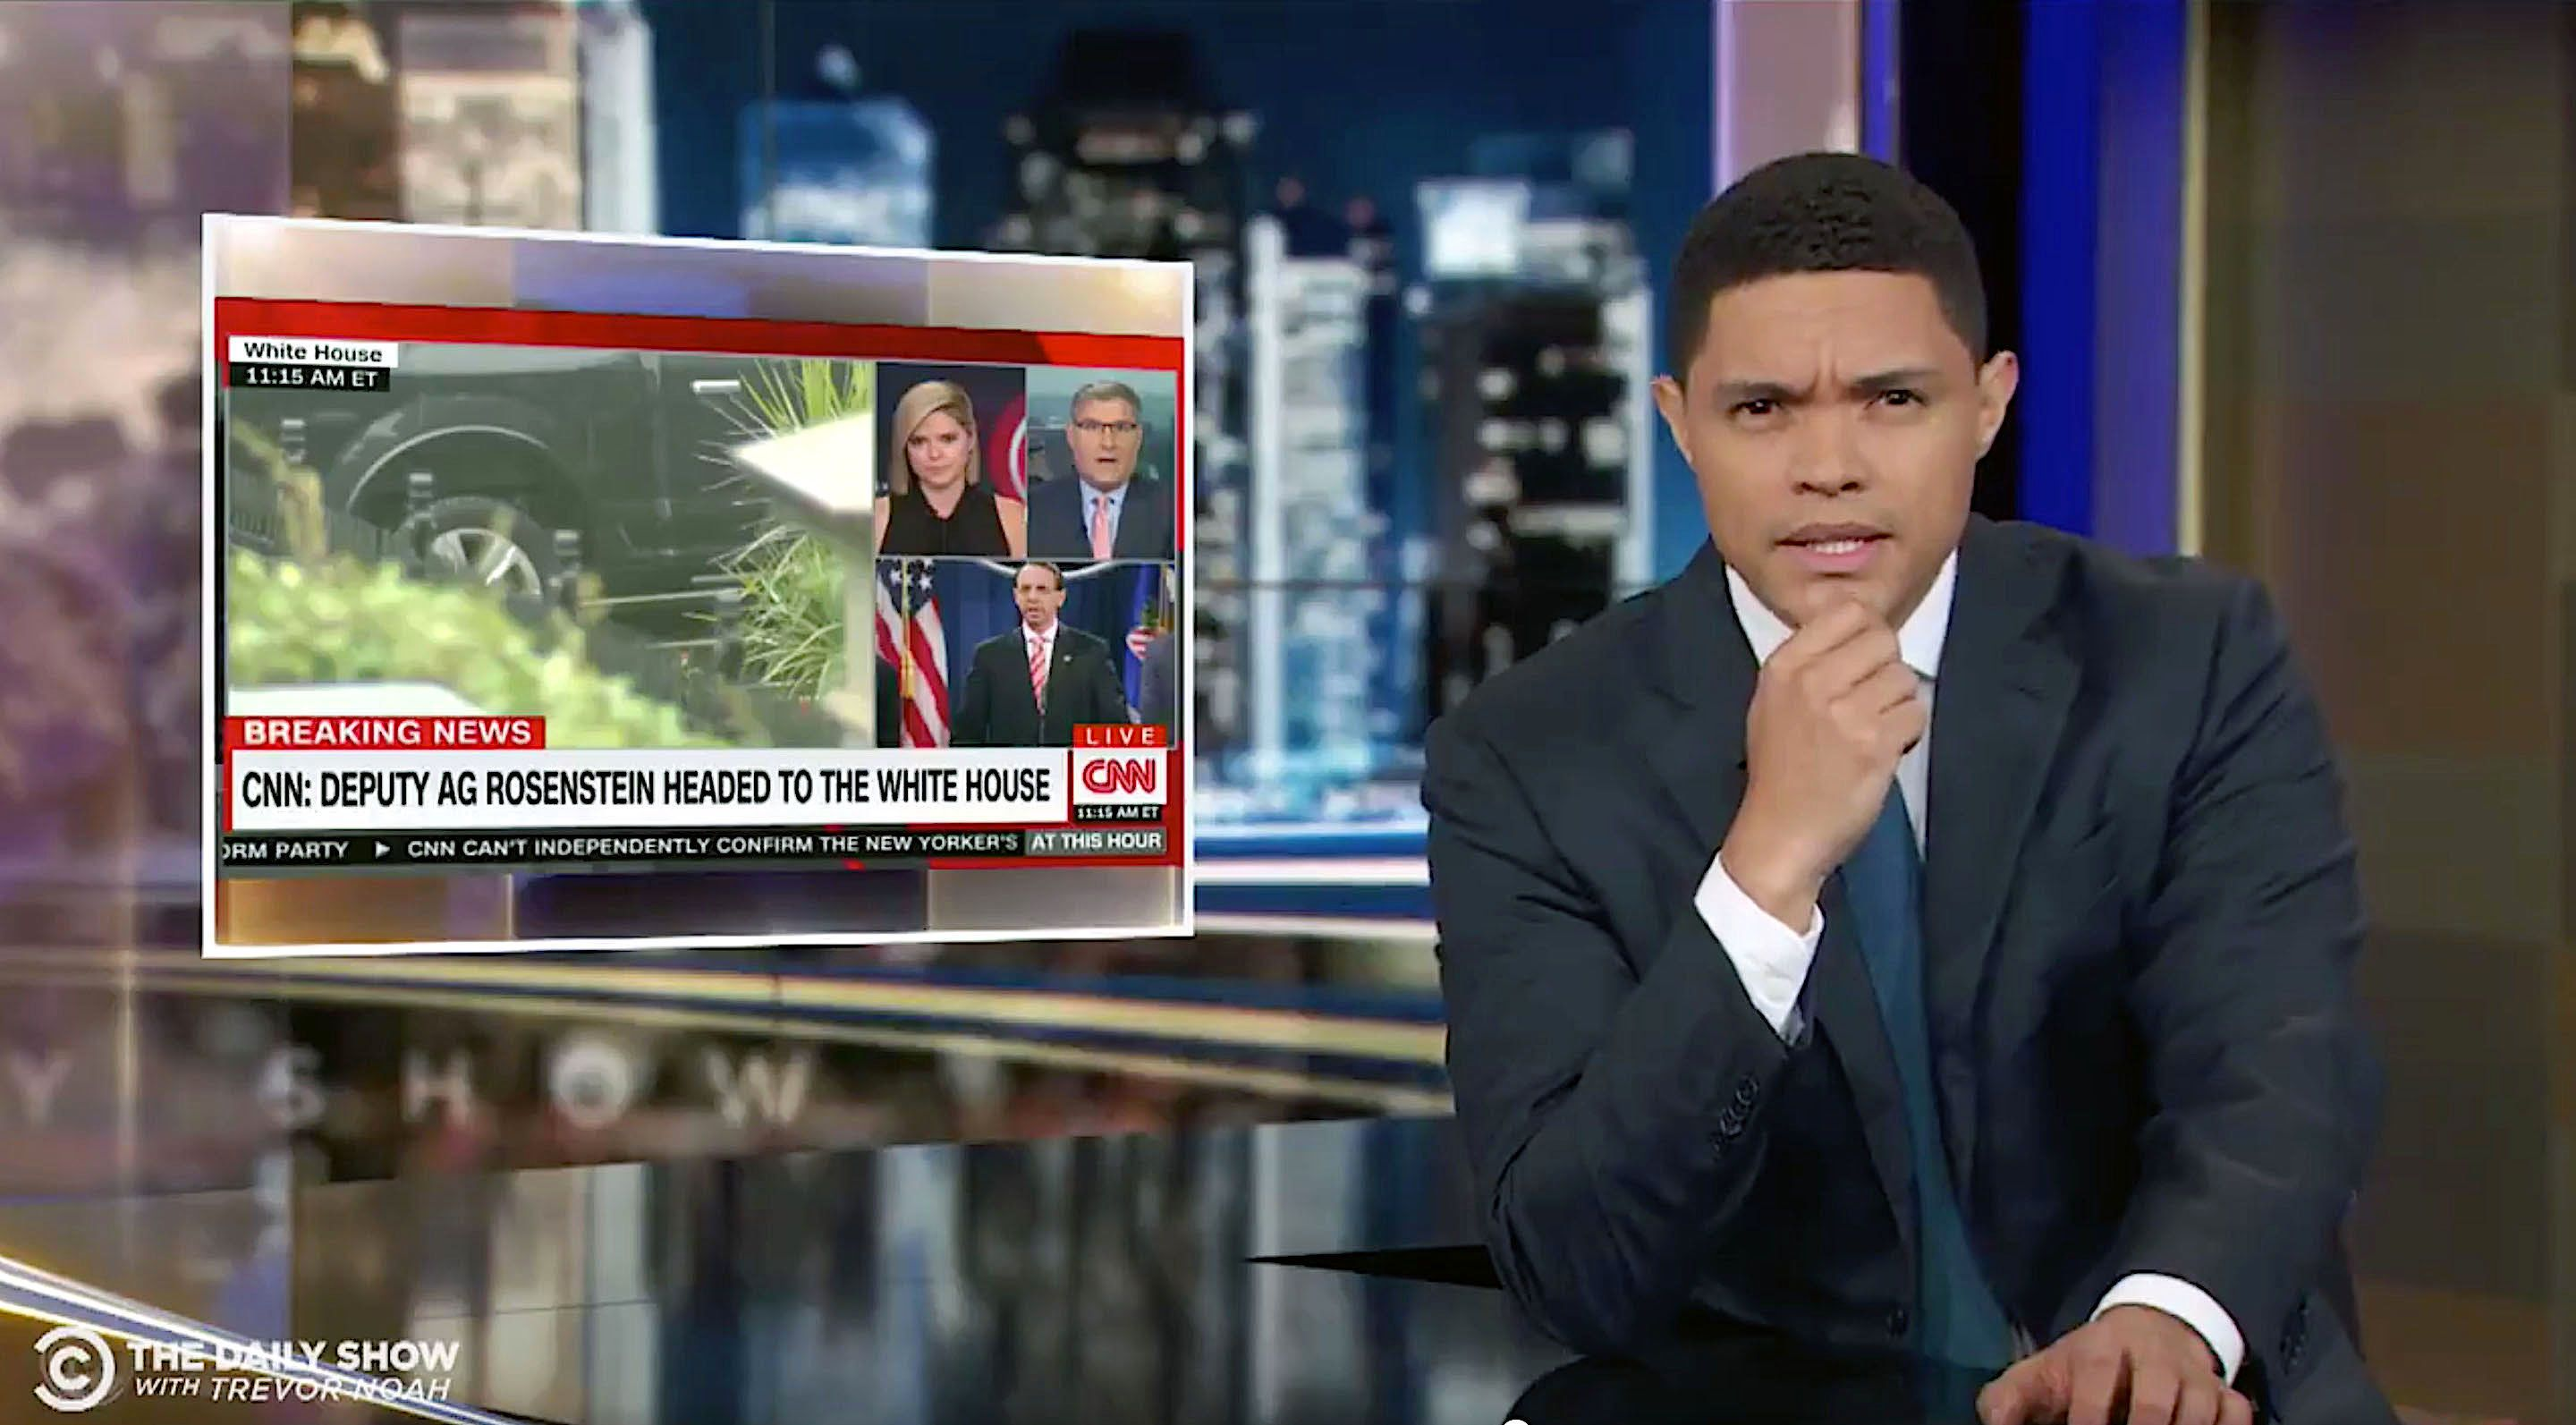 Trevor Noah of The Daily Show has a problem with breaking news